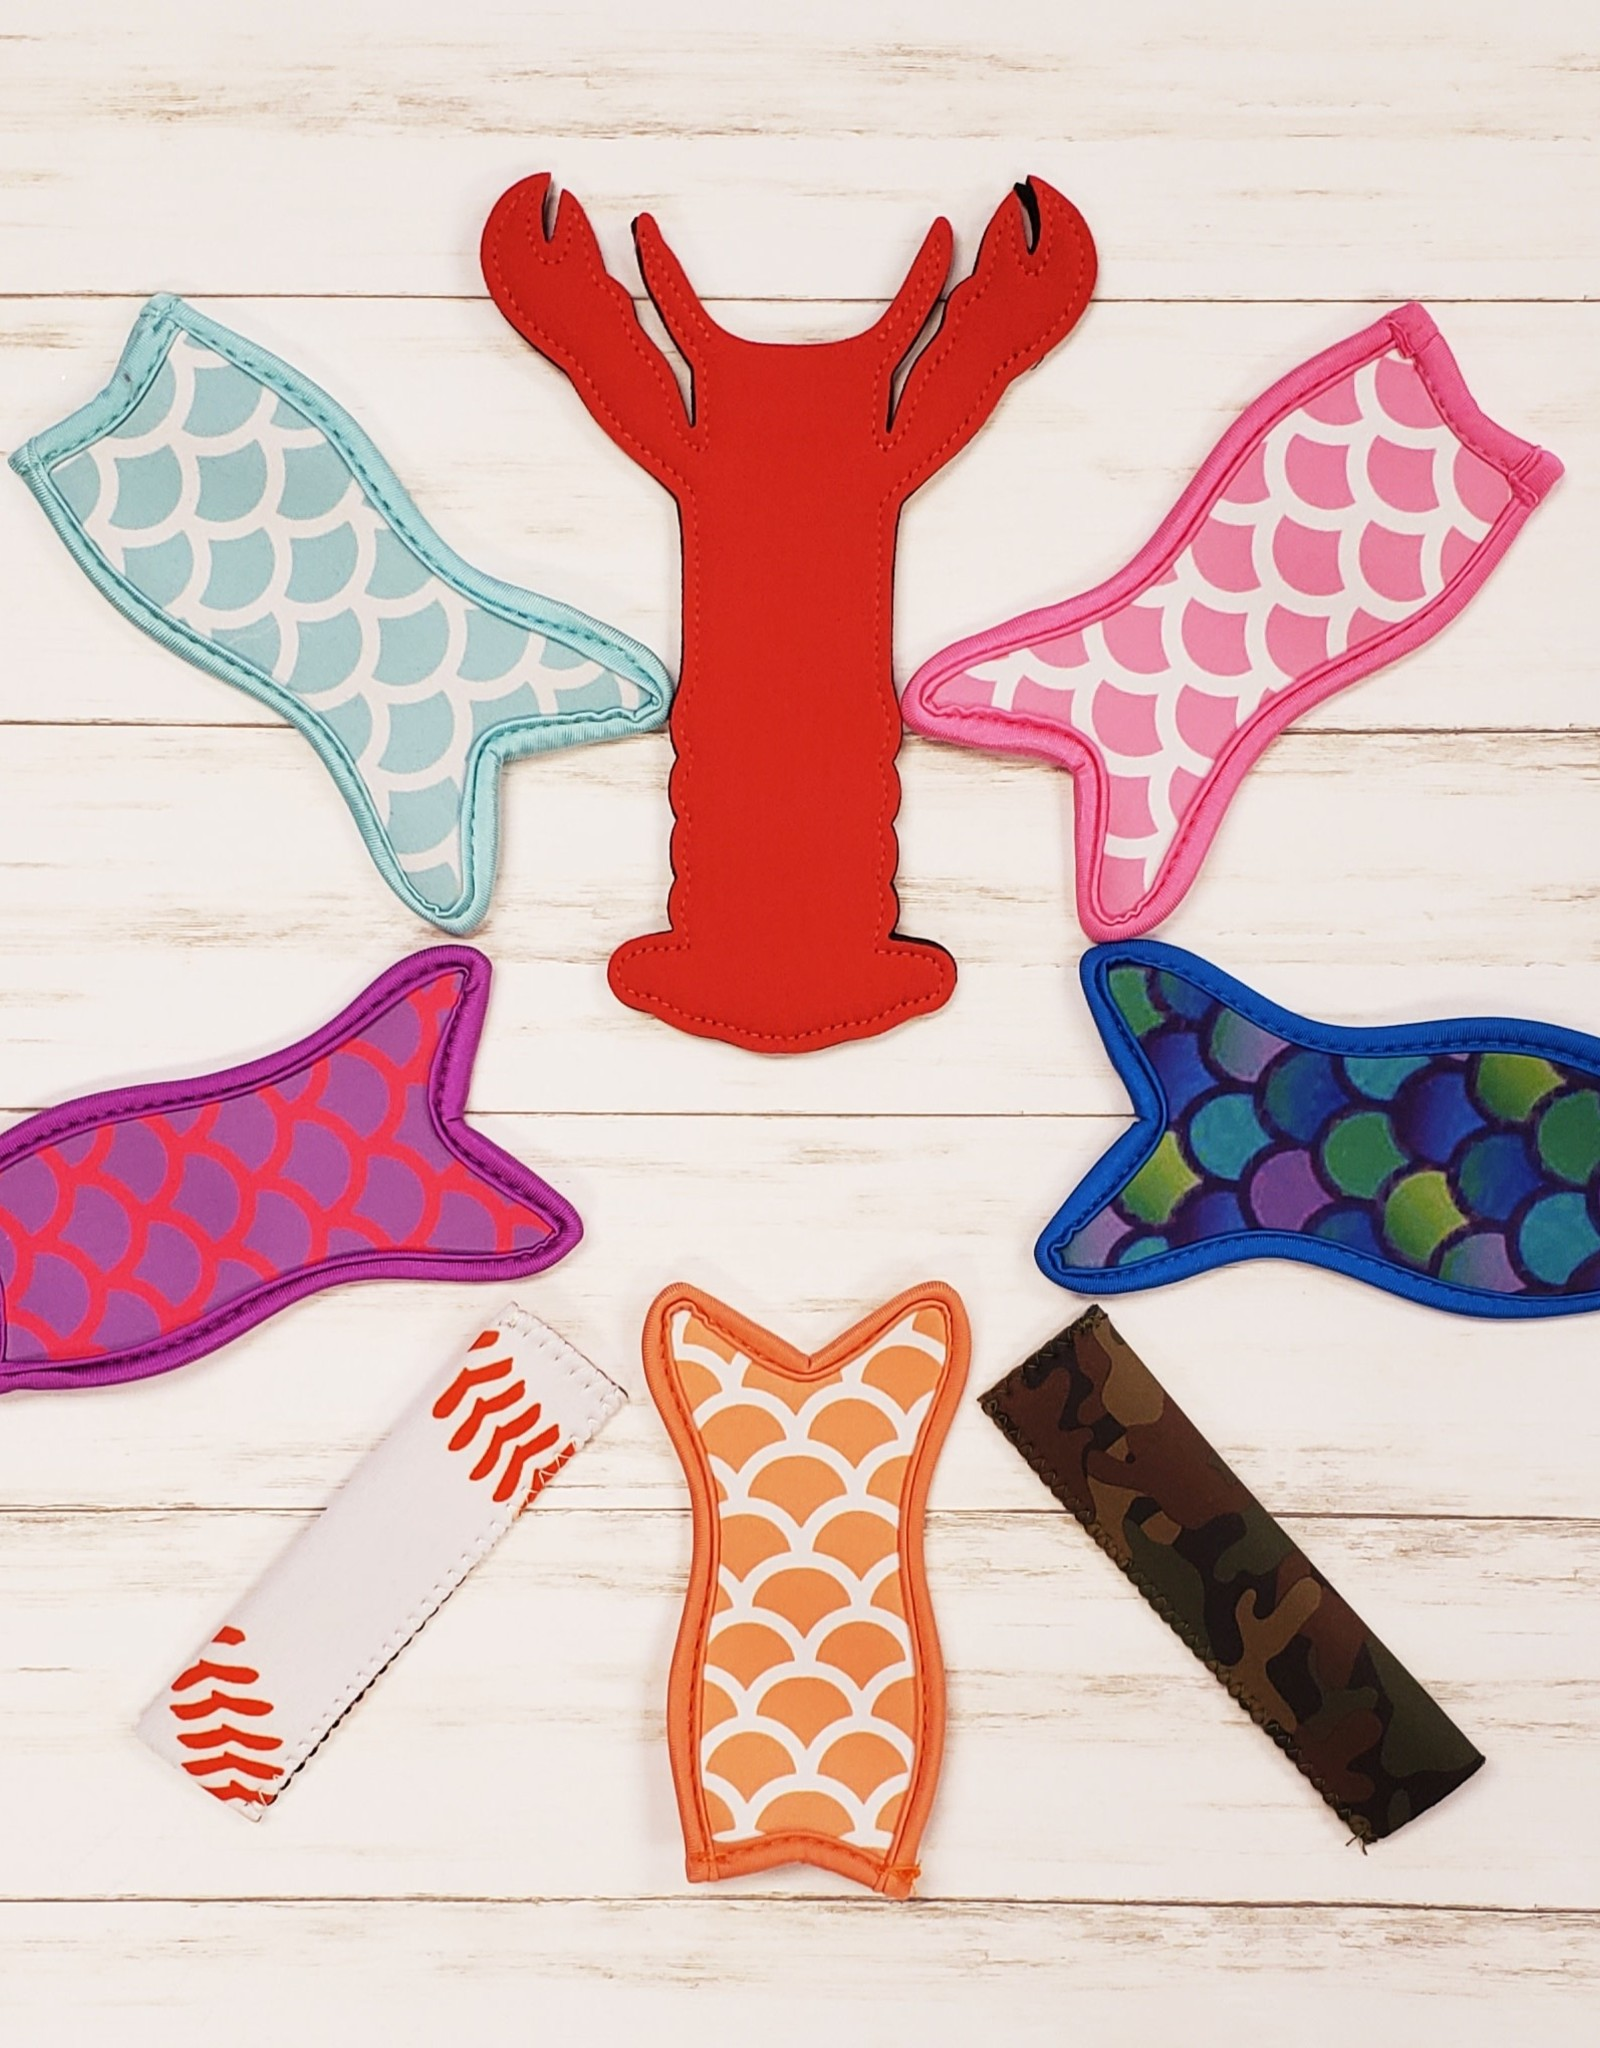 Mermaid Popsicle Holders